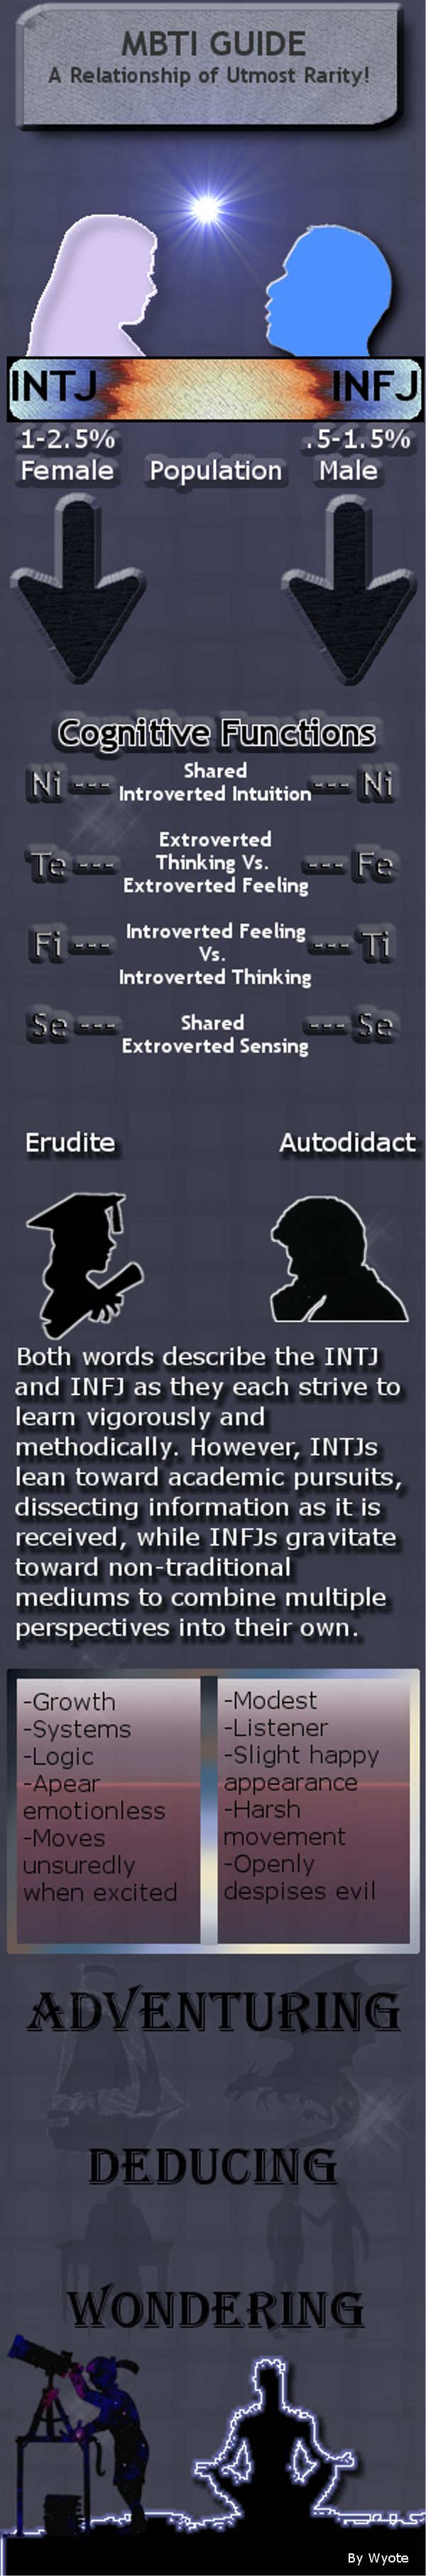 intj or infj male dating